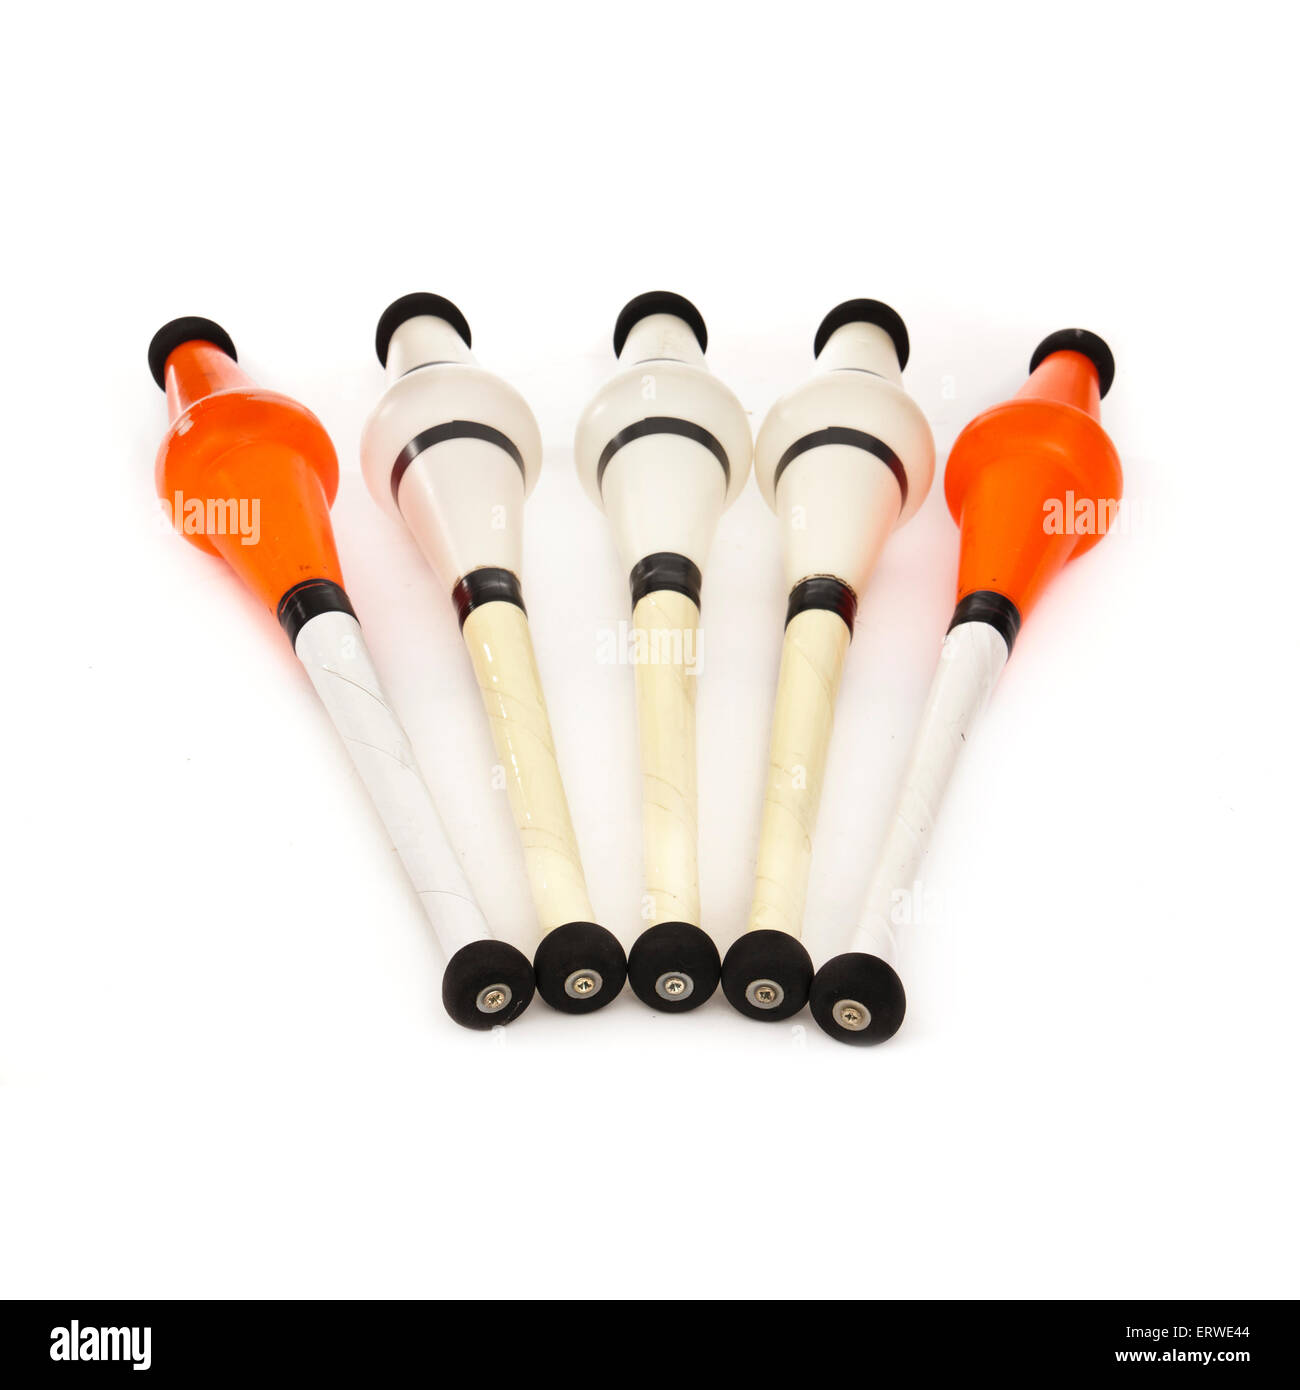 Set of professional juggling clubs by Radical Fish - Stock Image